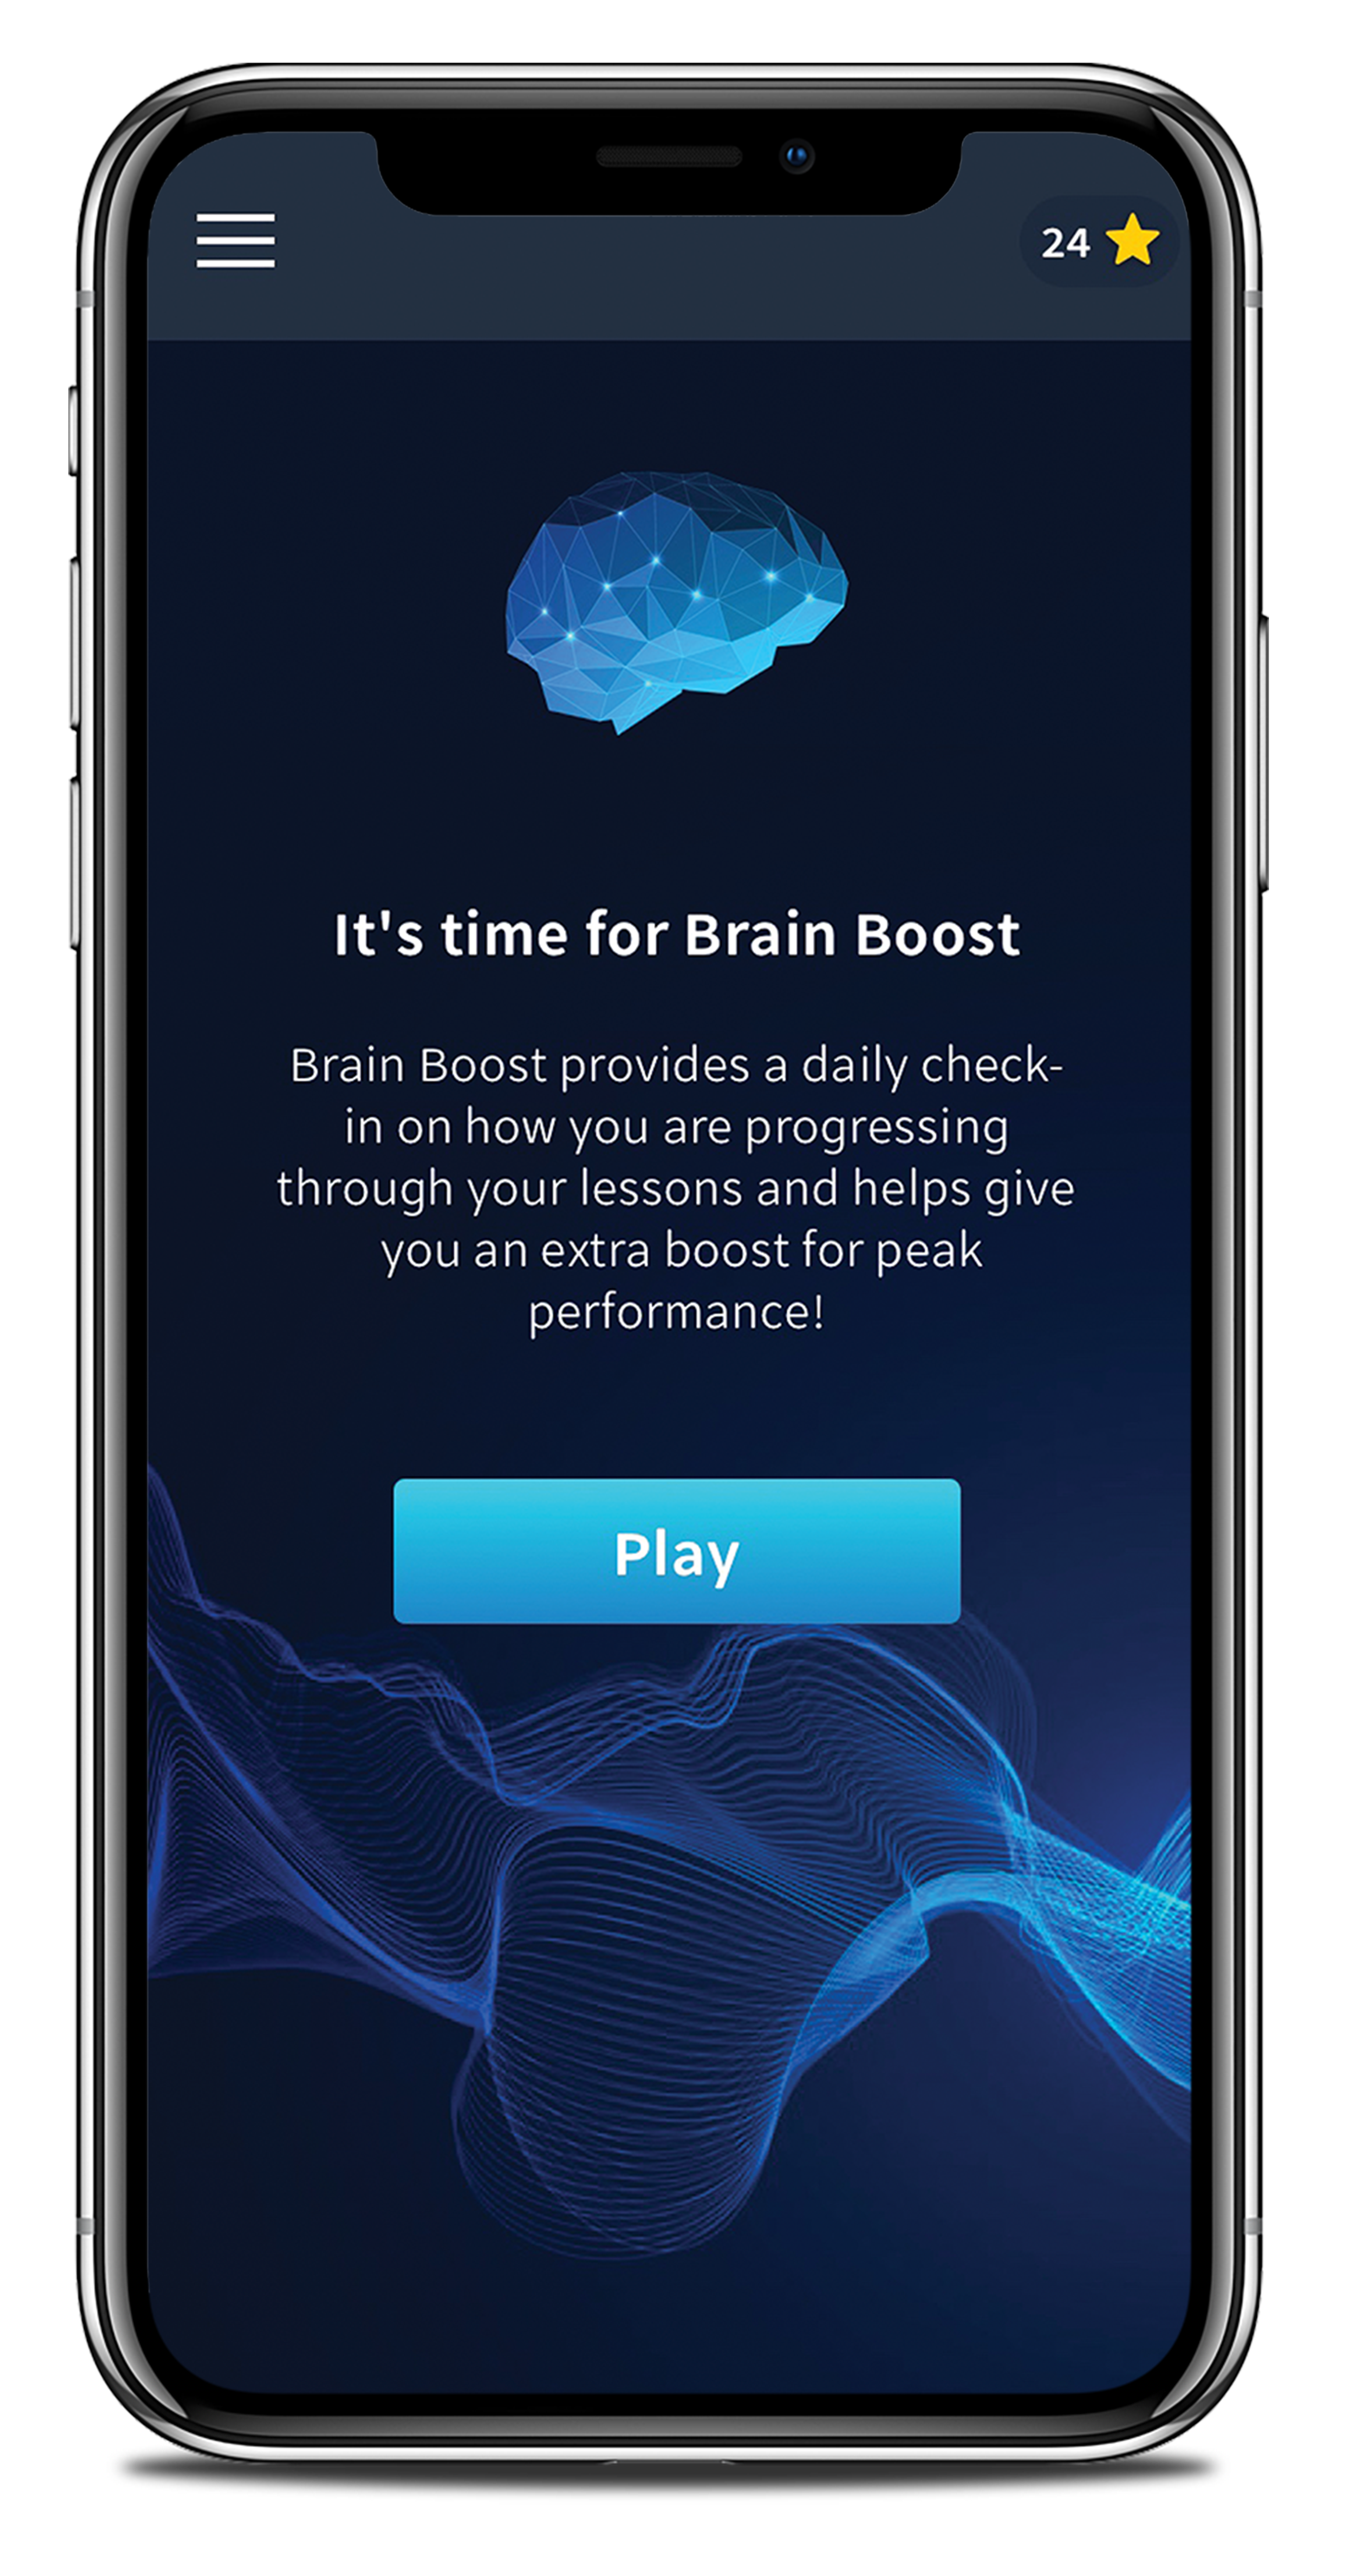 EdApp's algorithm spaced repetition feature, Brain Boost, automatically creates interactive lessons based on previously learned content. This encourages retention until it is locked into the learners' longterm memory.